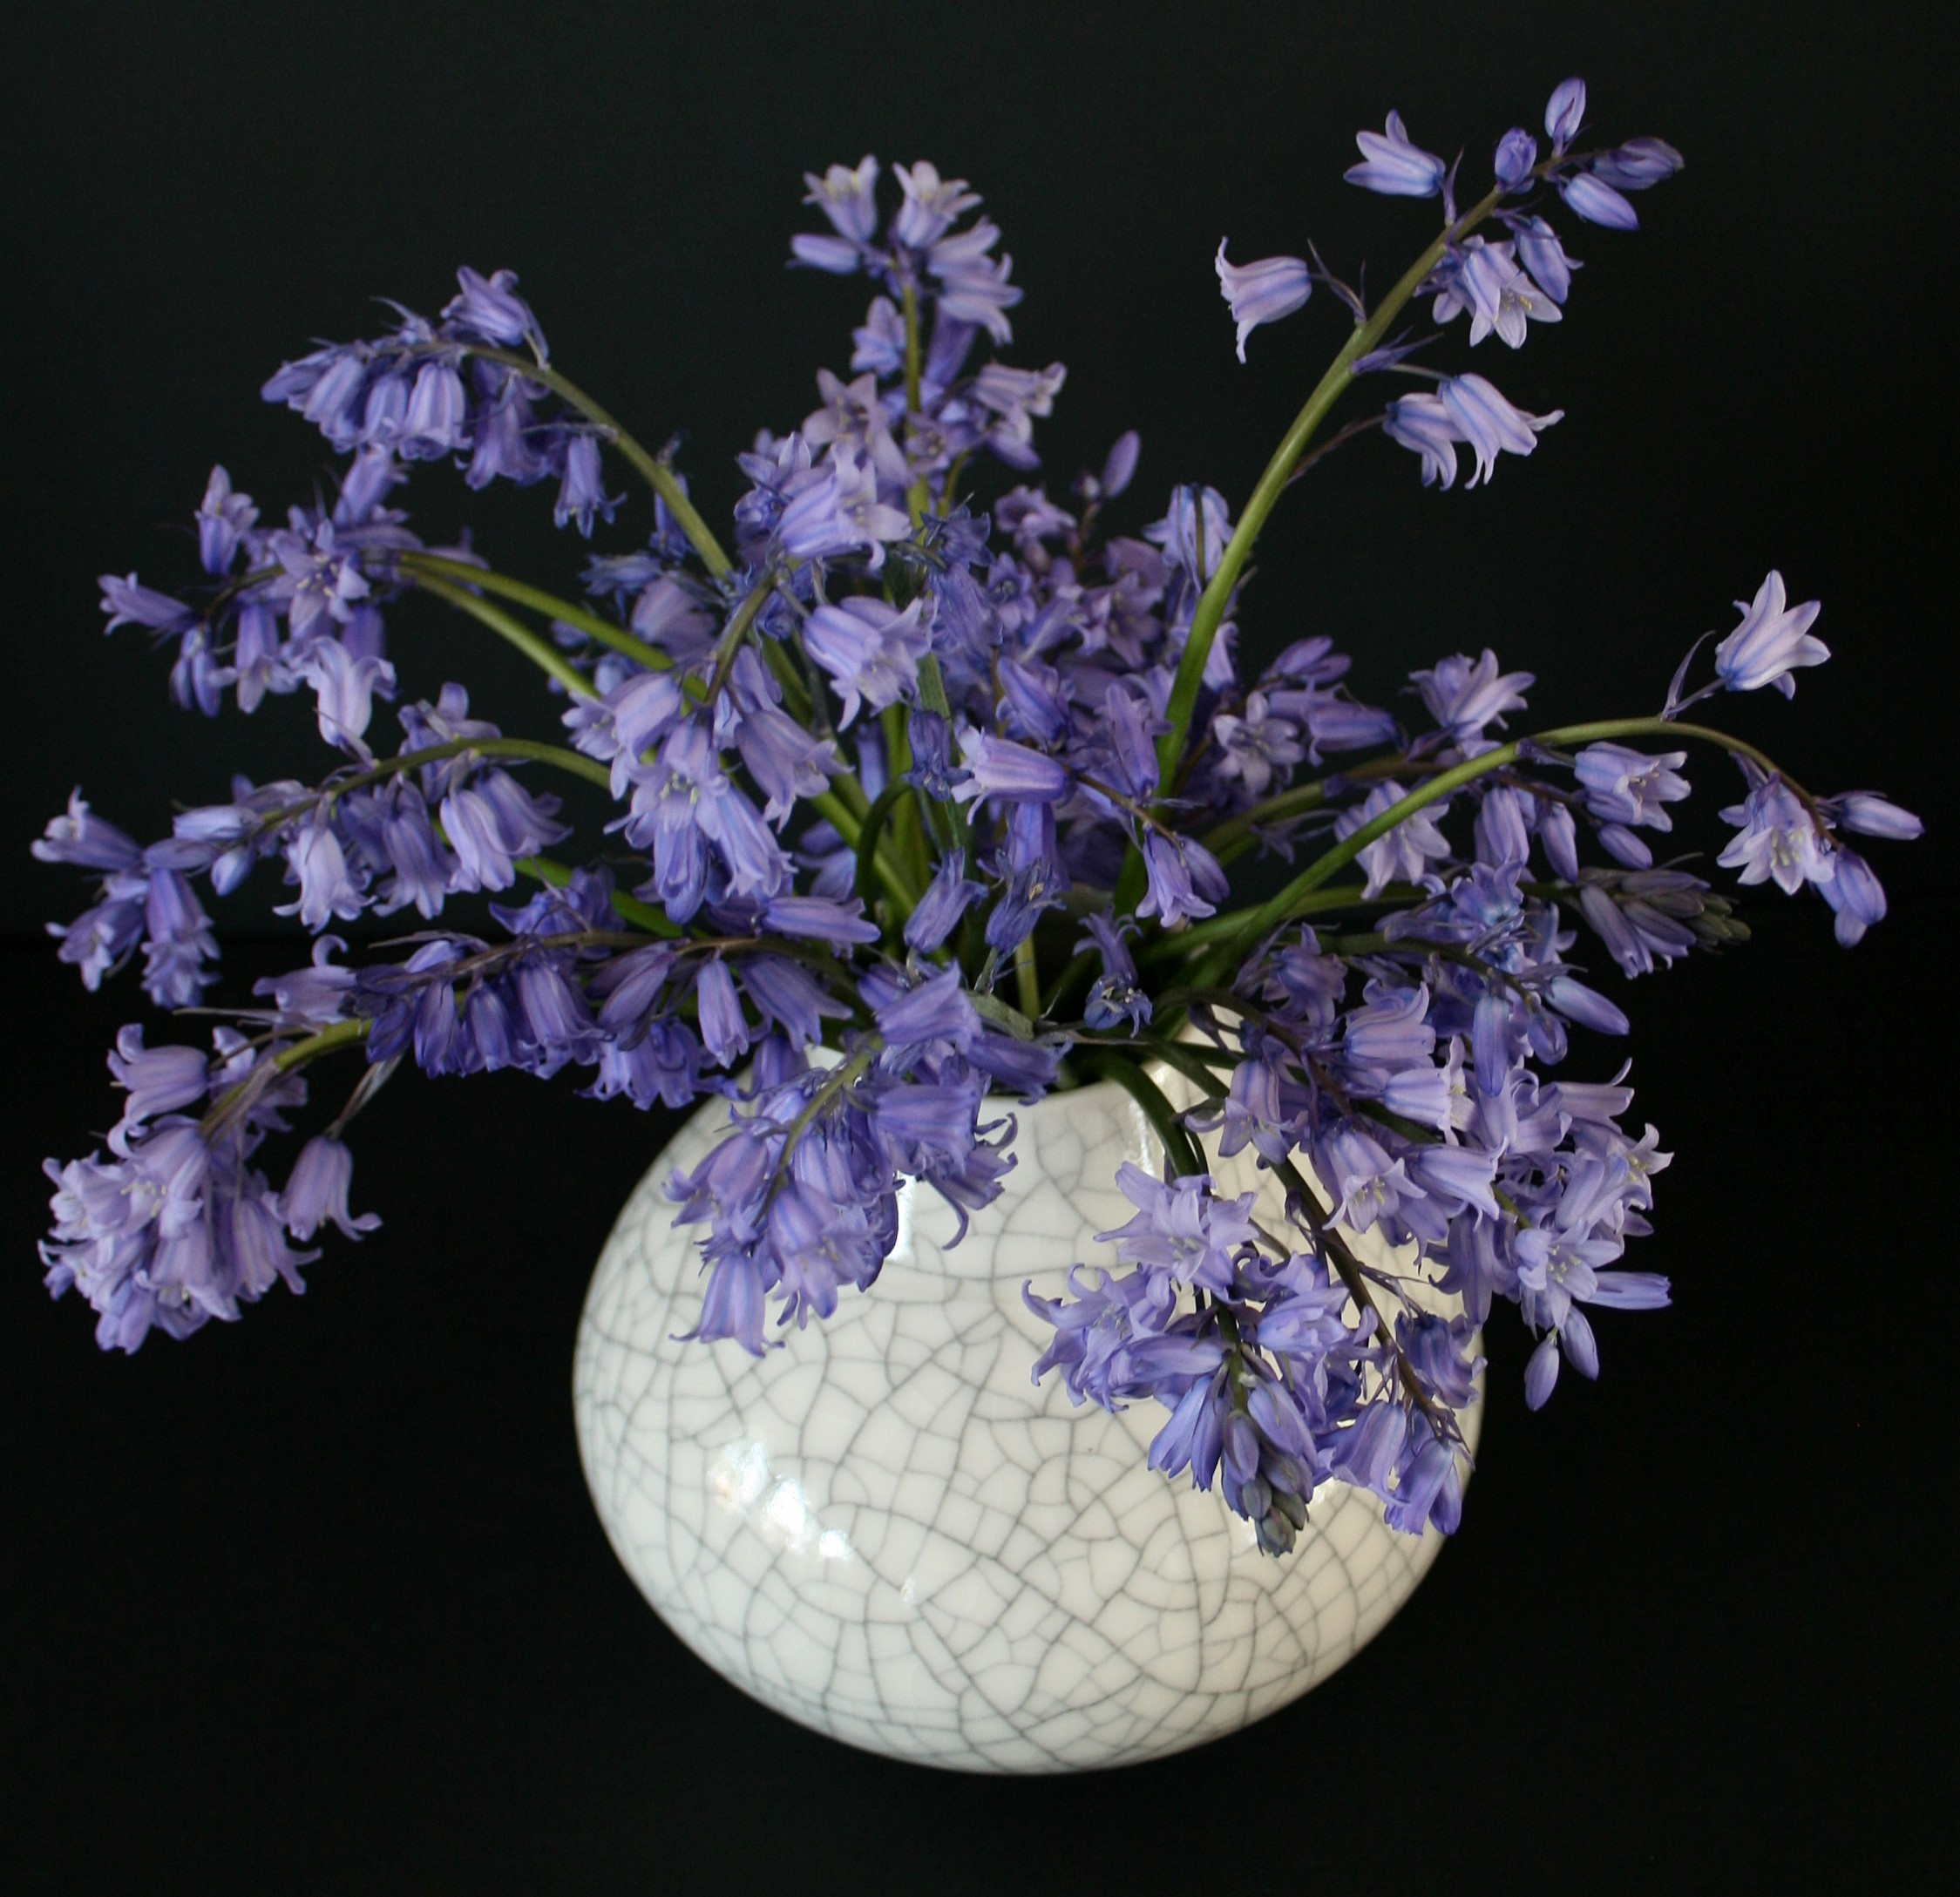 https://0501.nccdn.net/4_2/000/000/076/de9/bluebells-in-porcelain-crackle-vase-2249x2177.jpg